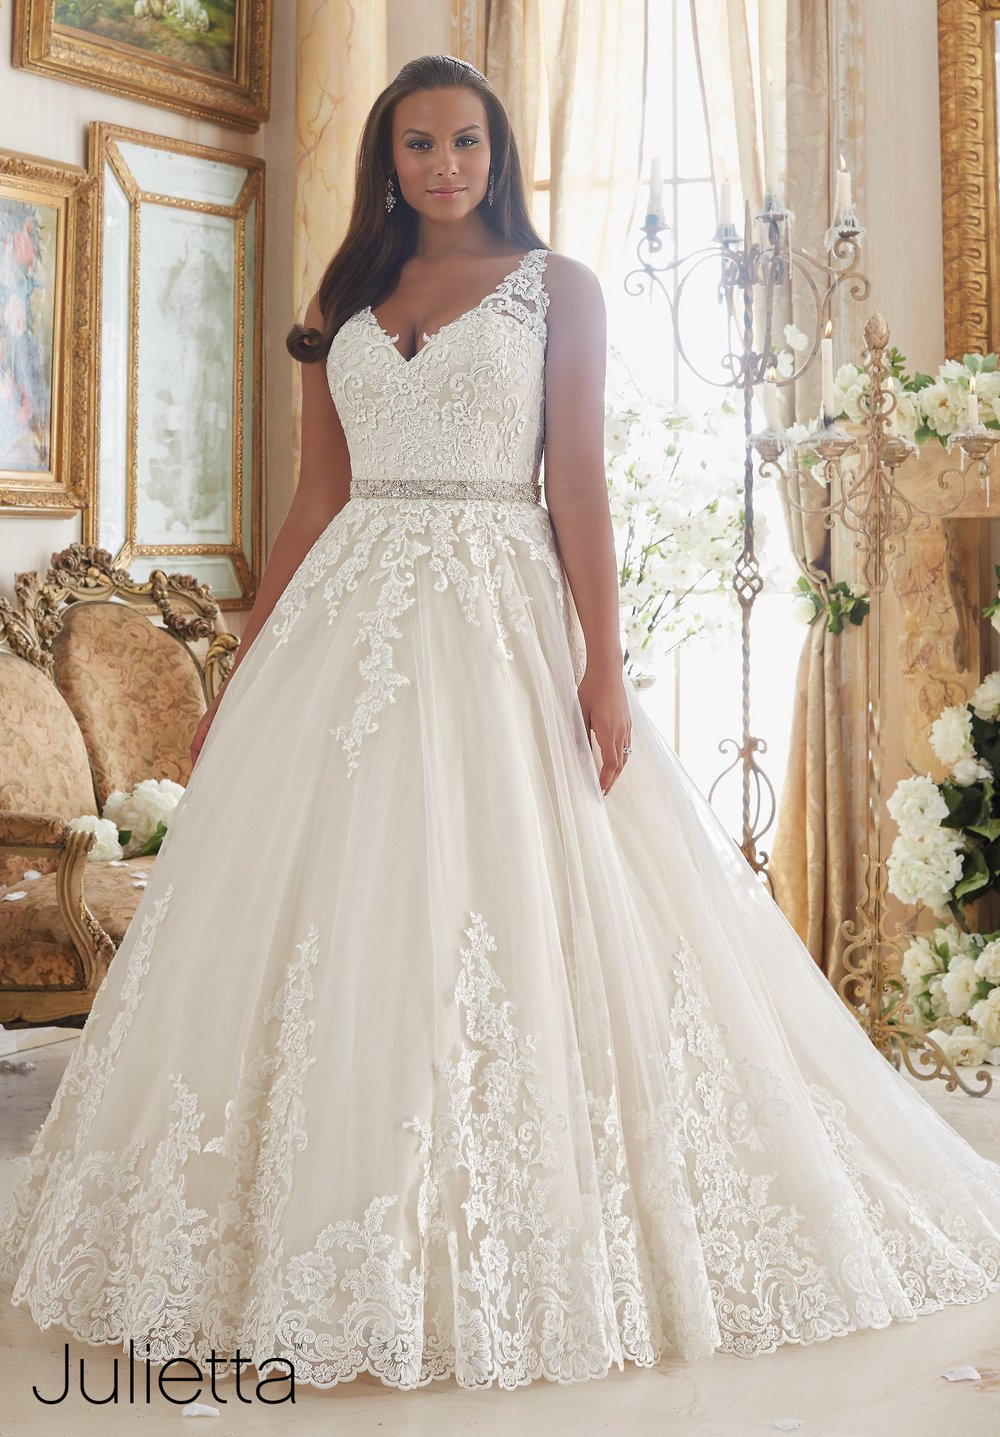 Lace applique on tulle plus size Mori Lee ballgown wedding dress